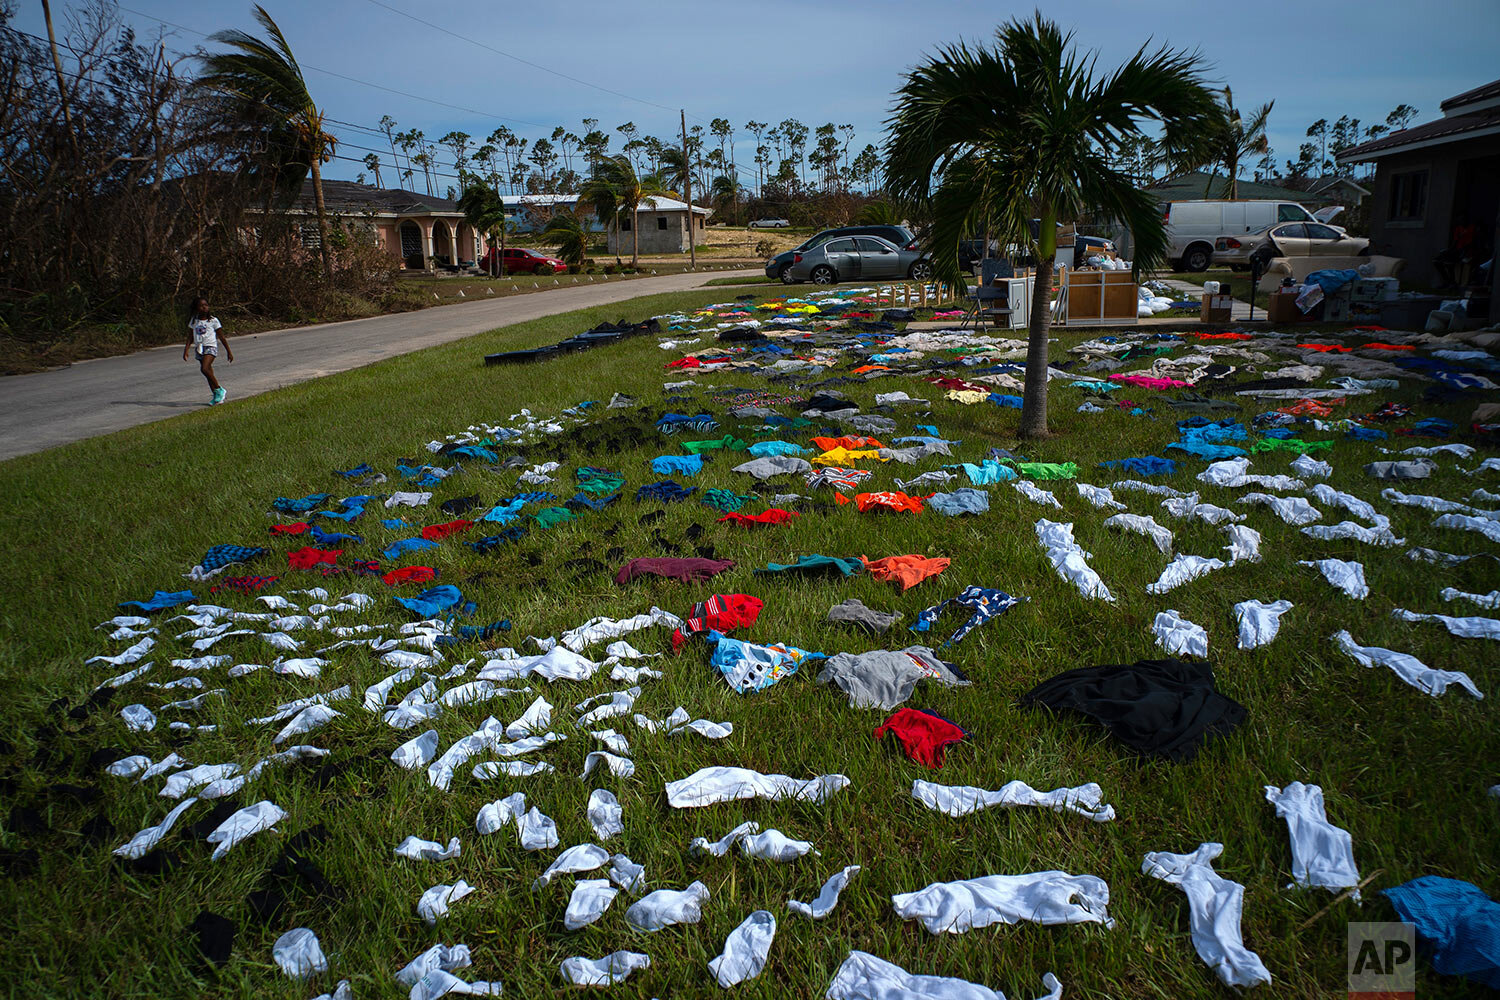 A child walks past clothes laid out to dry on a field in the aftermath of Hurricane Dorian, in the Arden Forest neighborhood of Freeport, Bahamas, Wednesday, Sept. 4, 2019. (AP Photo/Ramon Espinosa)